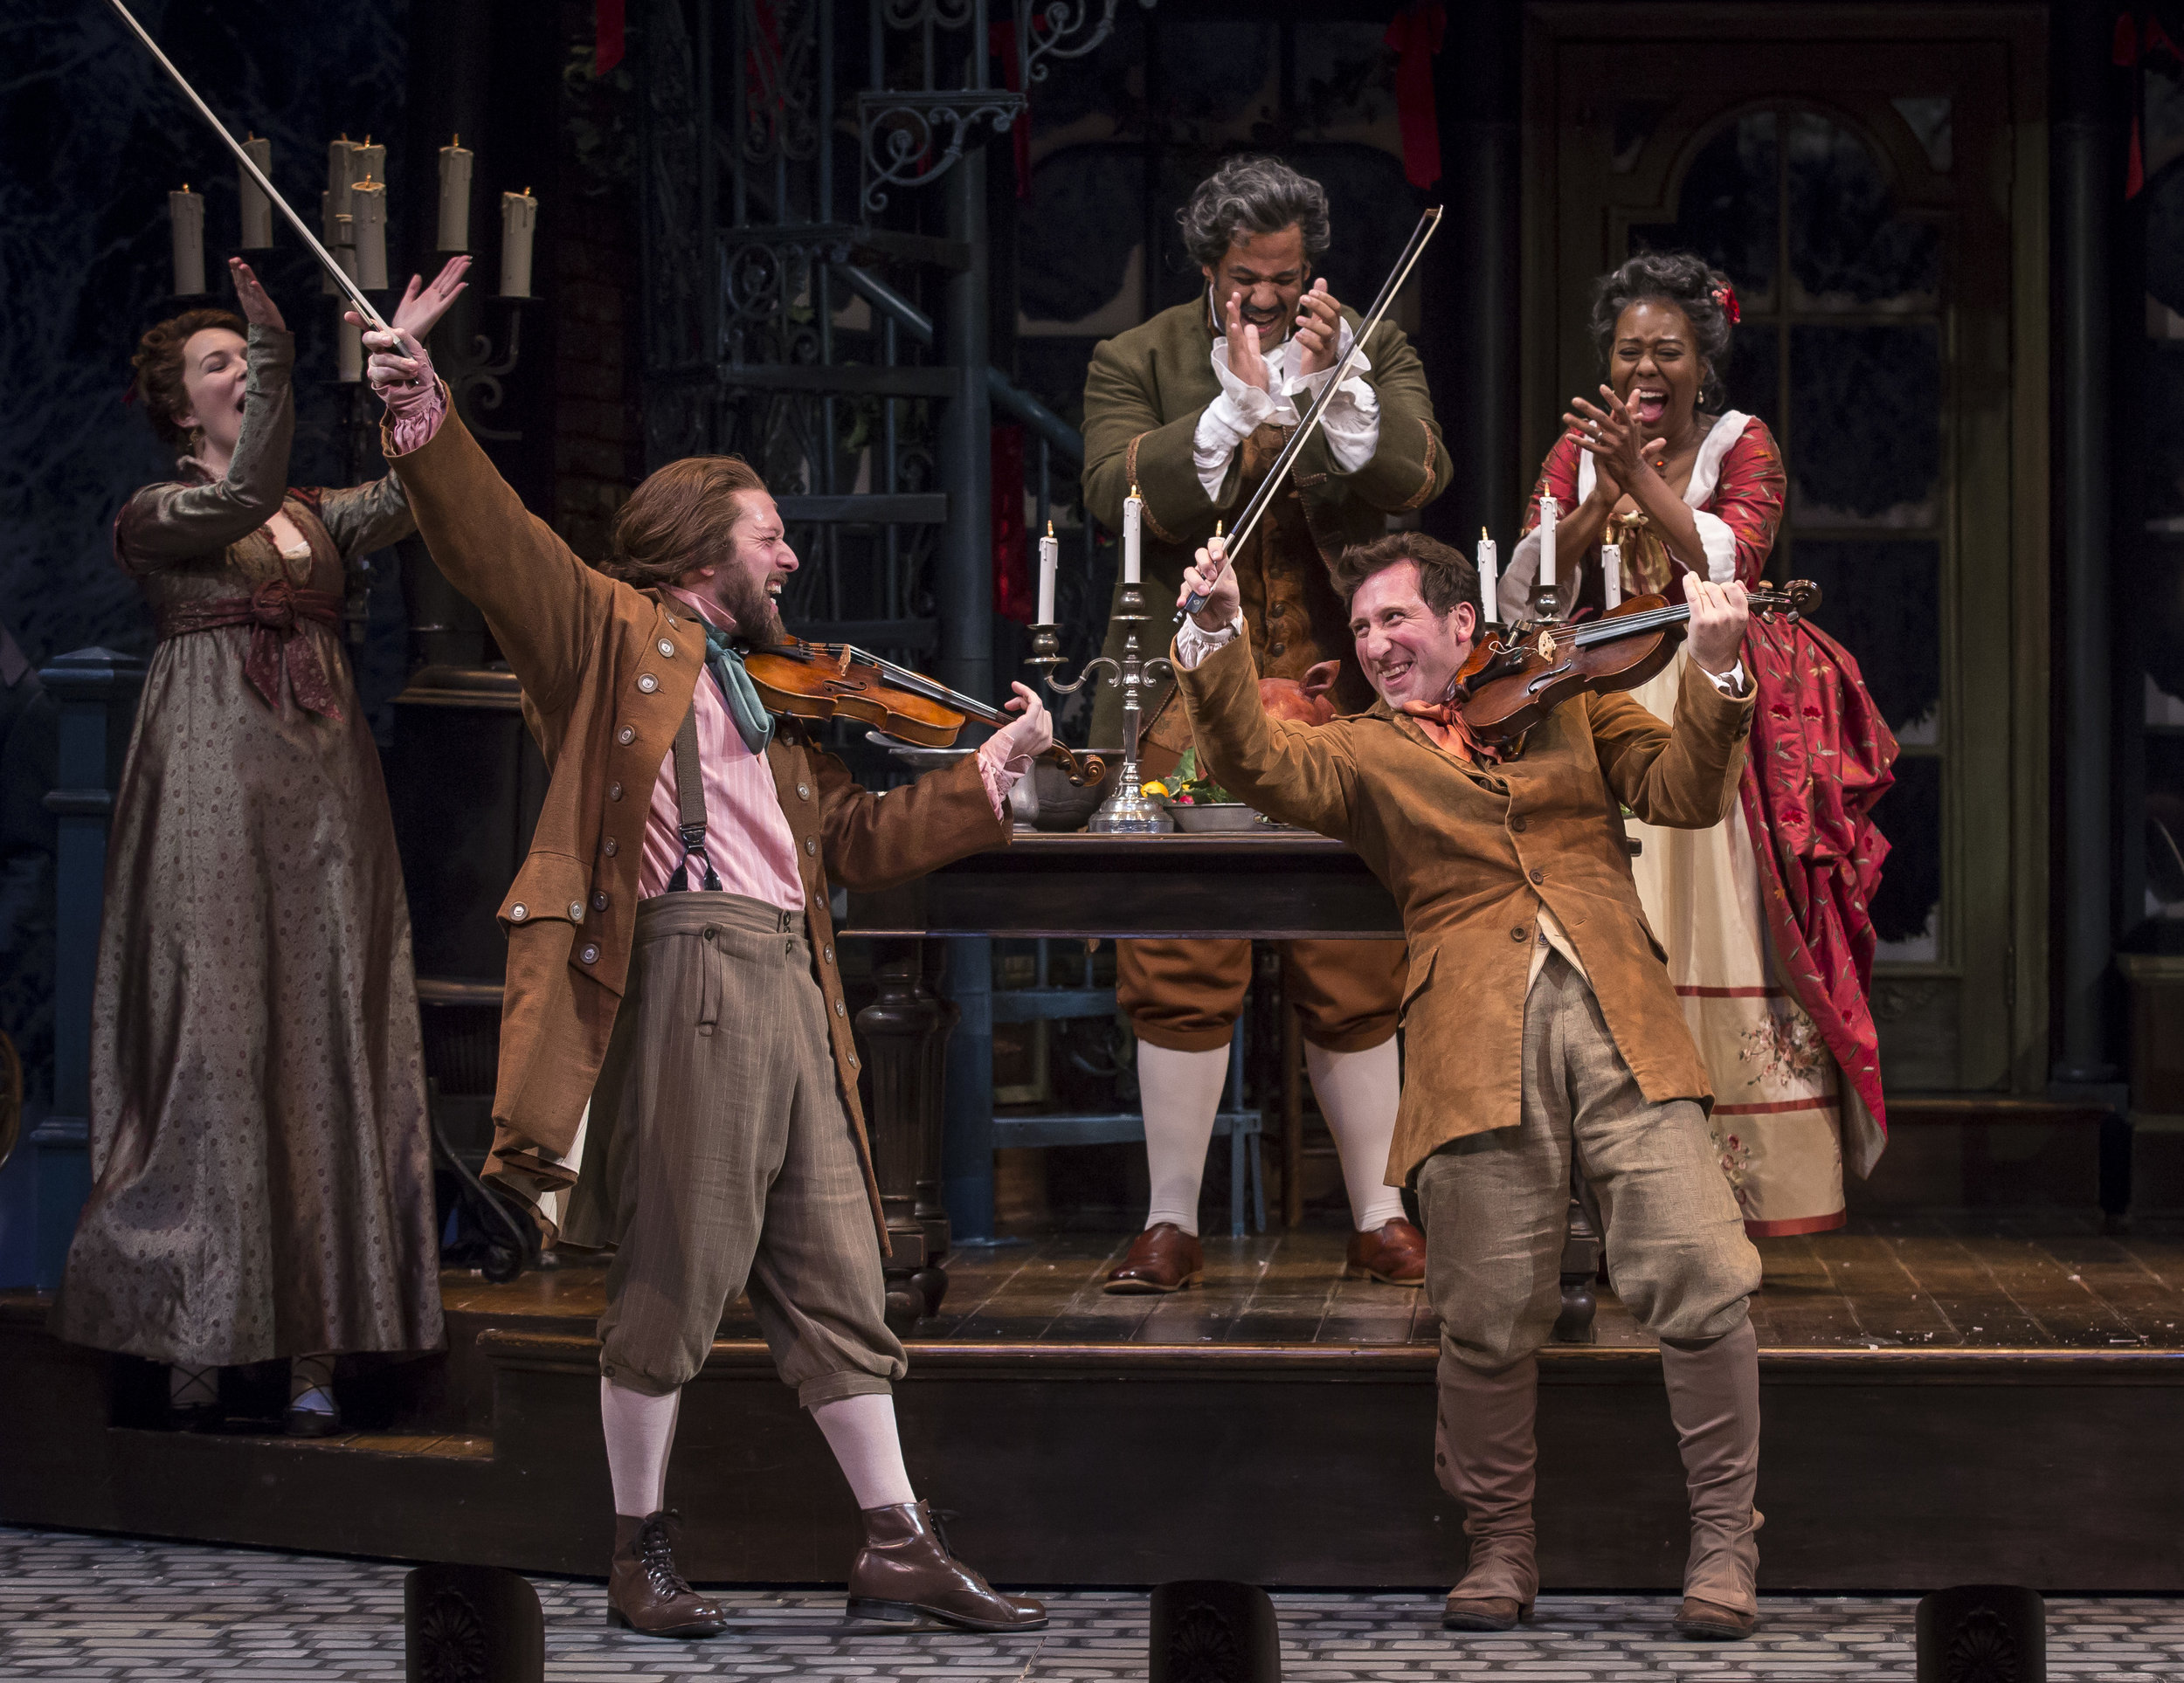 Ali Burch, Andrew Coil  (Musician/Fiddler), Jonah D. Winston (Mr. Fezziwig), Penelope  Walker (Mrs.Fezziwig) and  Gregory Hirte (Musician, Fiddler) in the 40th annual production of  A Christmas Carol , directed by Henry Wishcamper at Goodman Theatre.